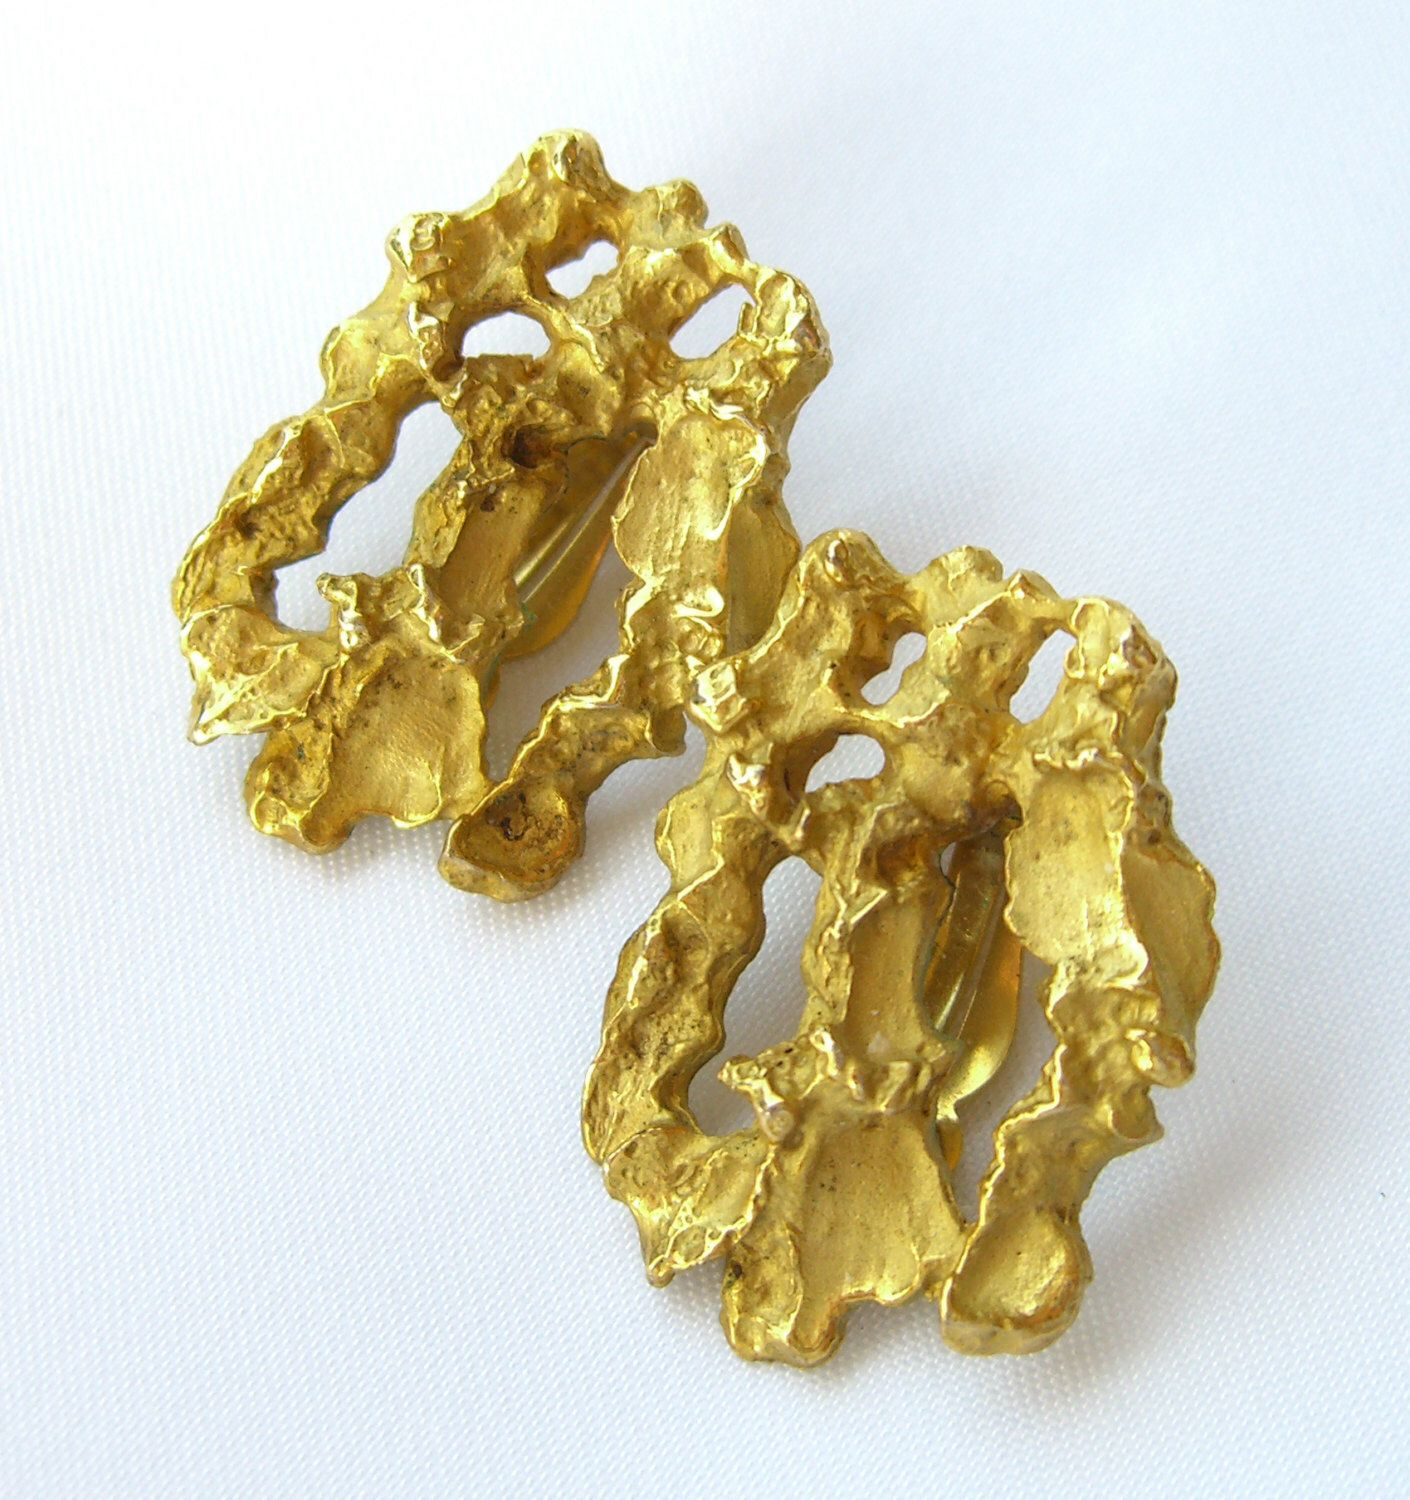 Vintage smithsonian earrings gold nugget replica museum jewelry